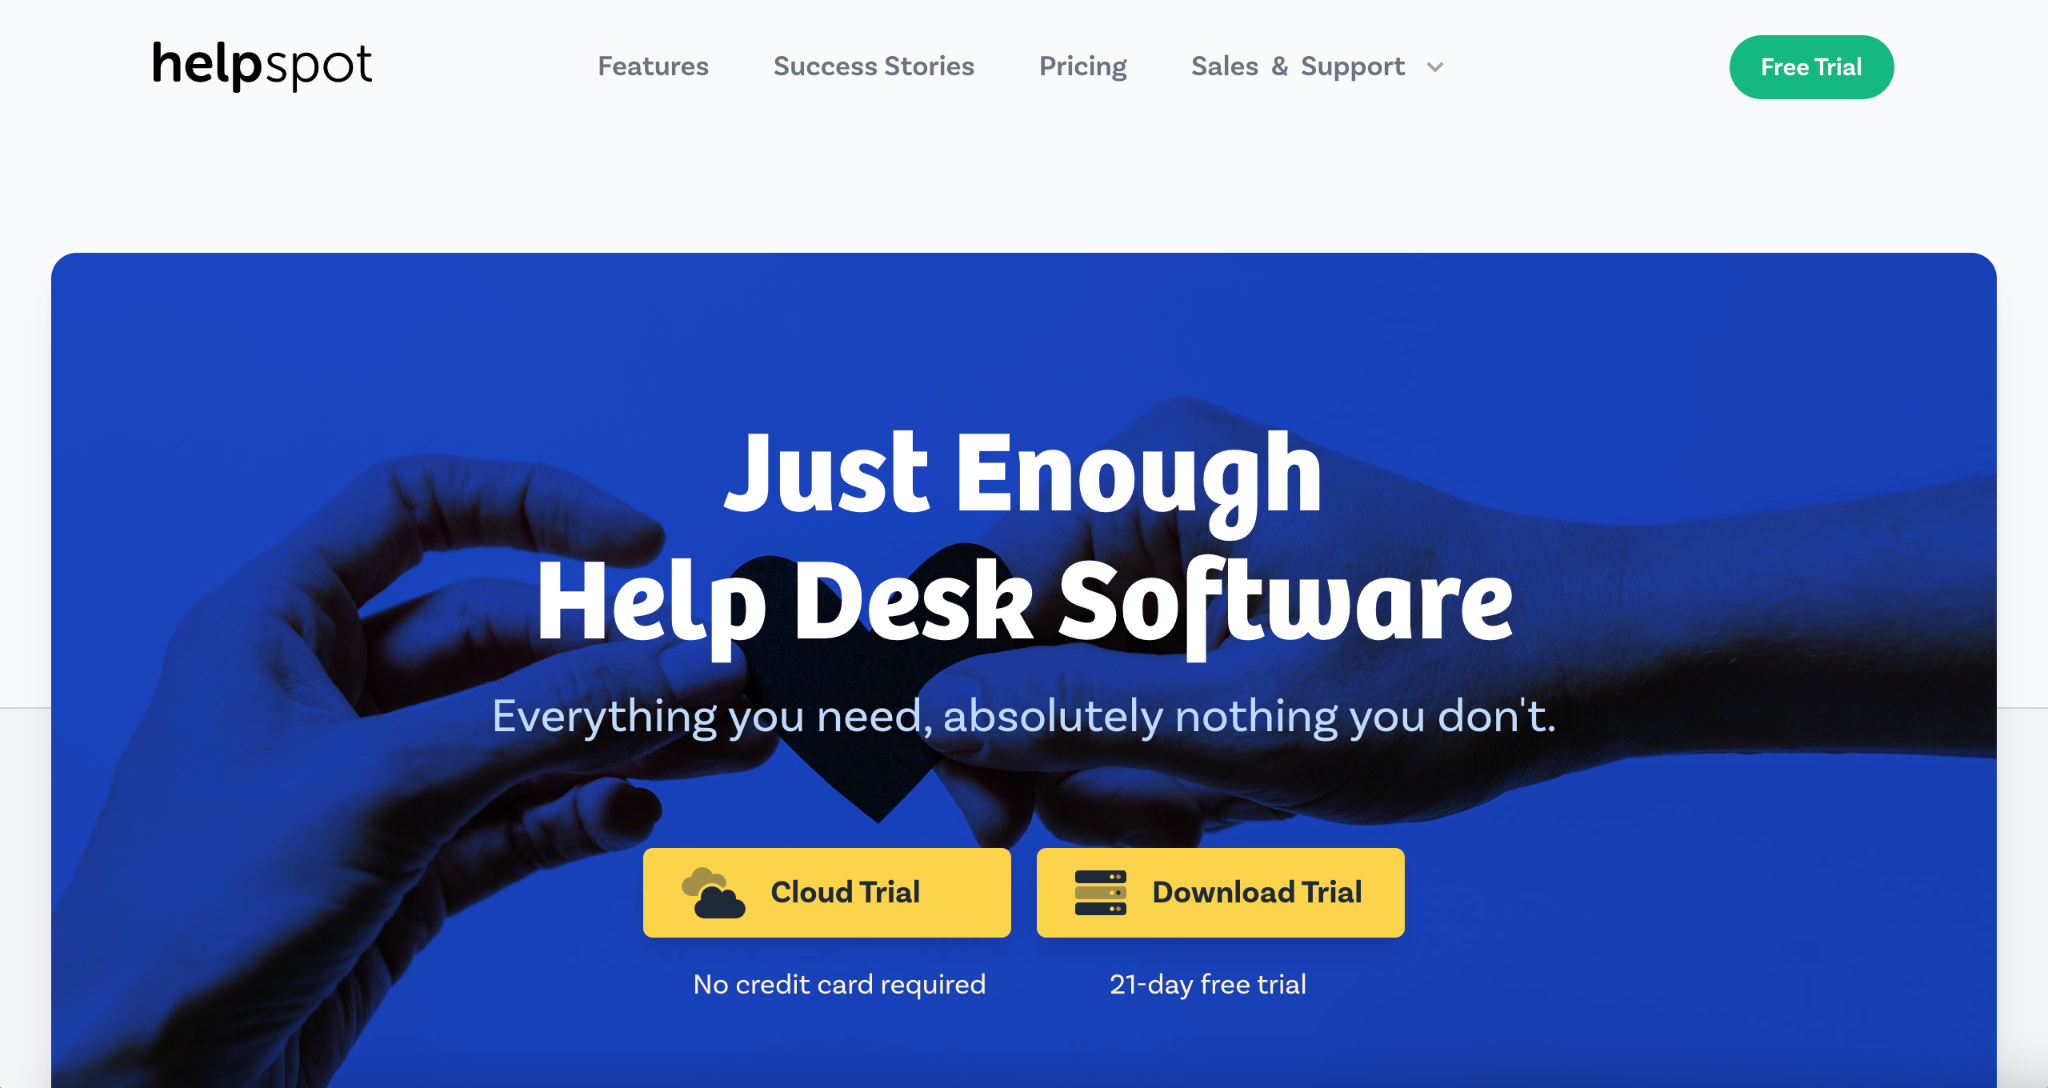 HelpSpot homepage: Just Enough Help Desk Software